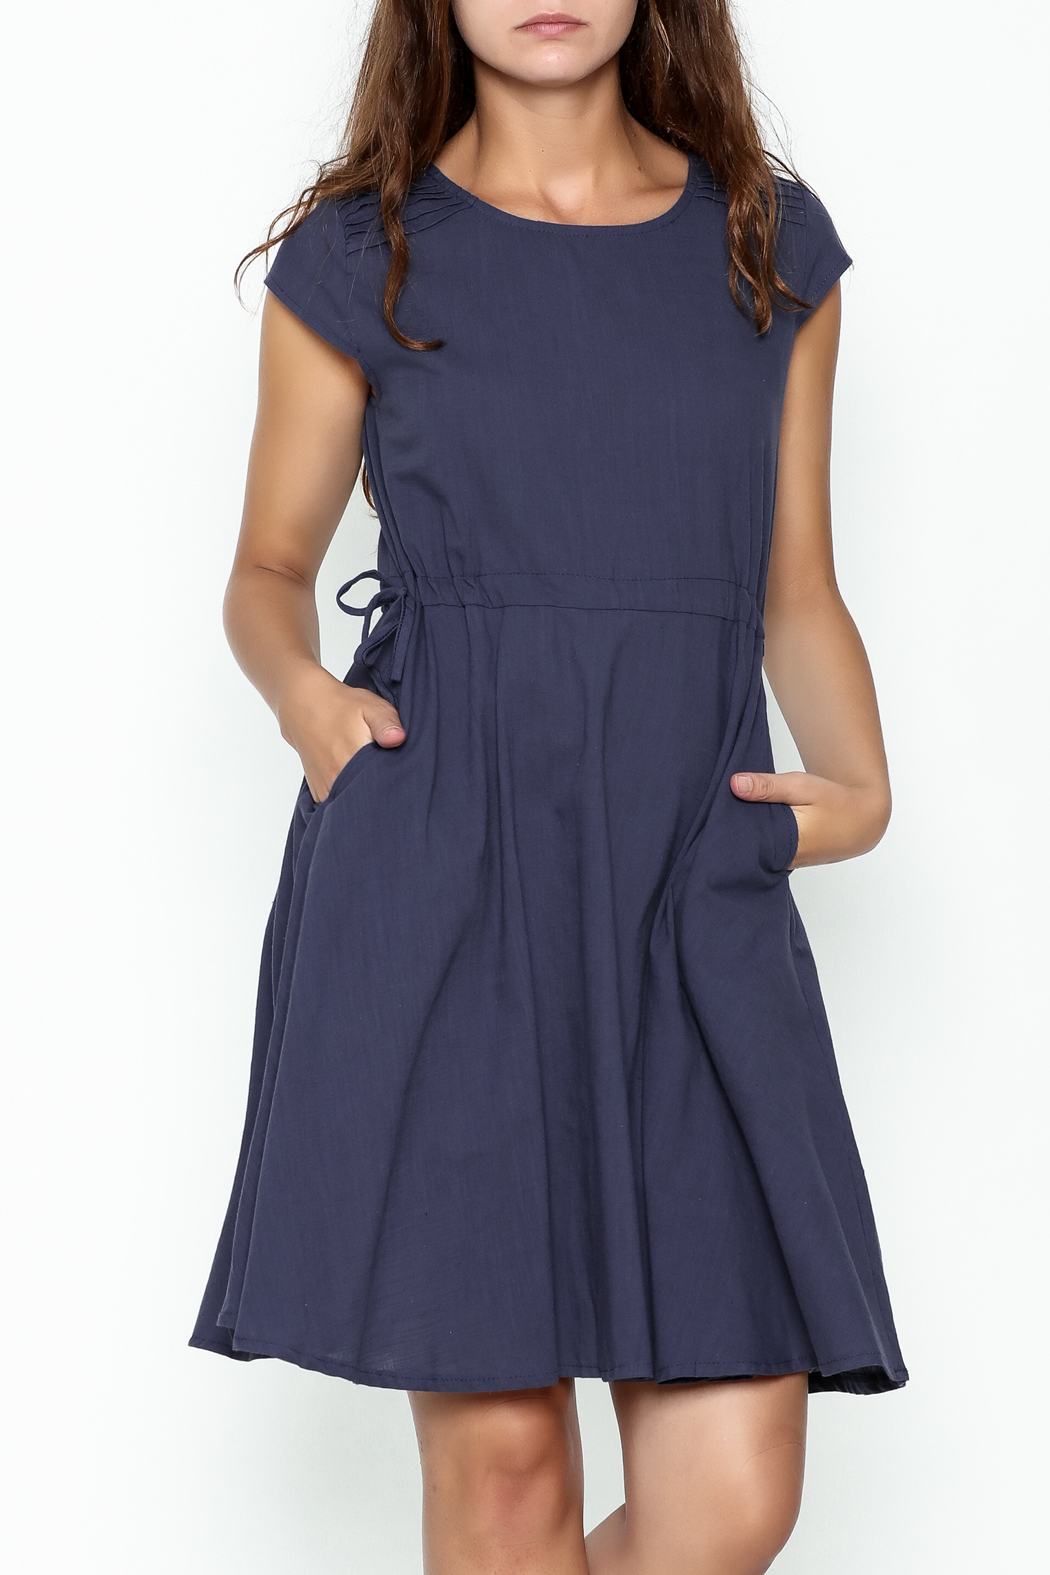 Fashion Pickle Navy Blue Pocket Dress - Front Cropped Image